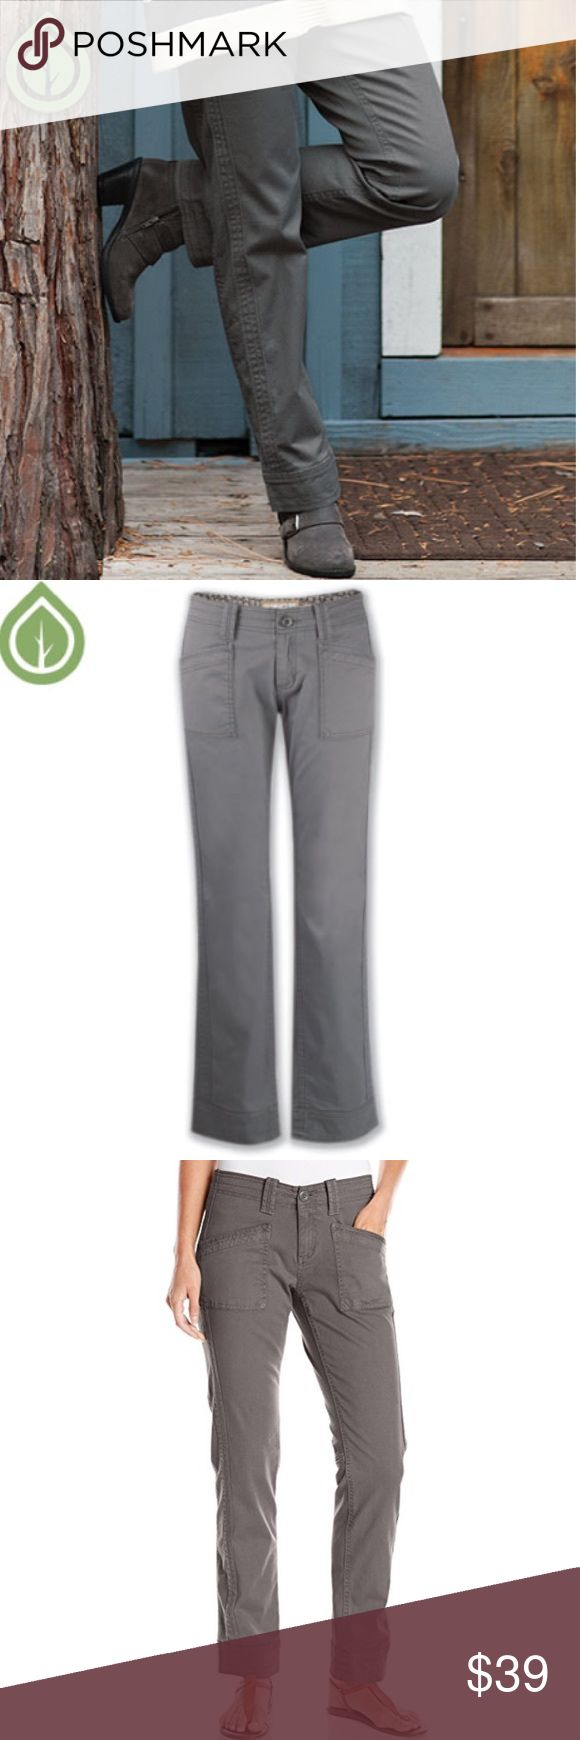 "FLASH SALE Organic Cotton Aventura Clothing Arden Women's Aventura Clothing Arden Pants Organic Cotton Sz 10 in Smoked Pearl MSRP $89.00 Relaxed-fitting silkily peached organic cotton stretchy twill. Contrast seaming & cargo-inspired silhouette, these babies easily go wherever you dare to wander.  Flower print-lined waistband/pockets Woven canvas trim at sides/back pockets  Includes to spare buttons. Drop-in hand pockets NEW W/O Tags Inseam 32""  Leg opening 18"" Waistband 1-3/4""   Belt loops…"